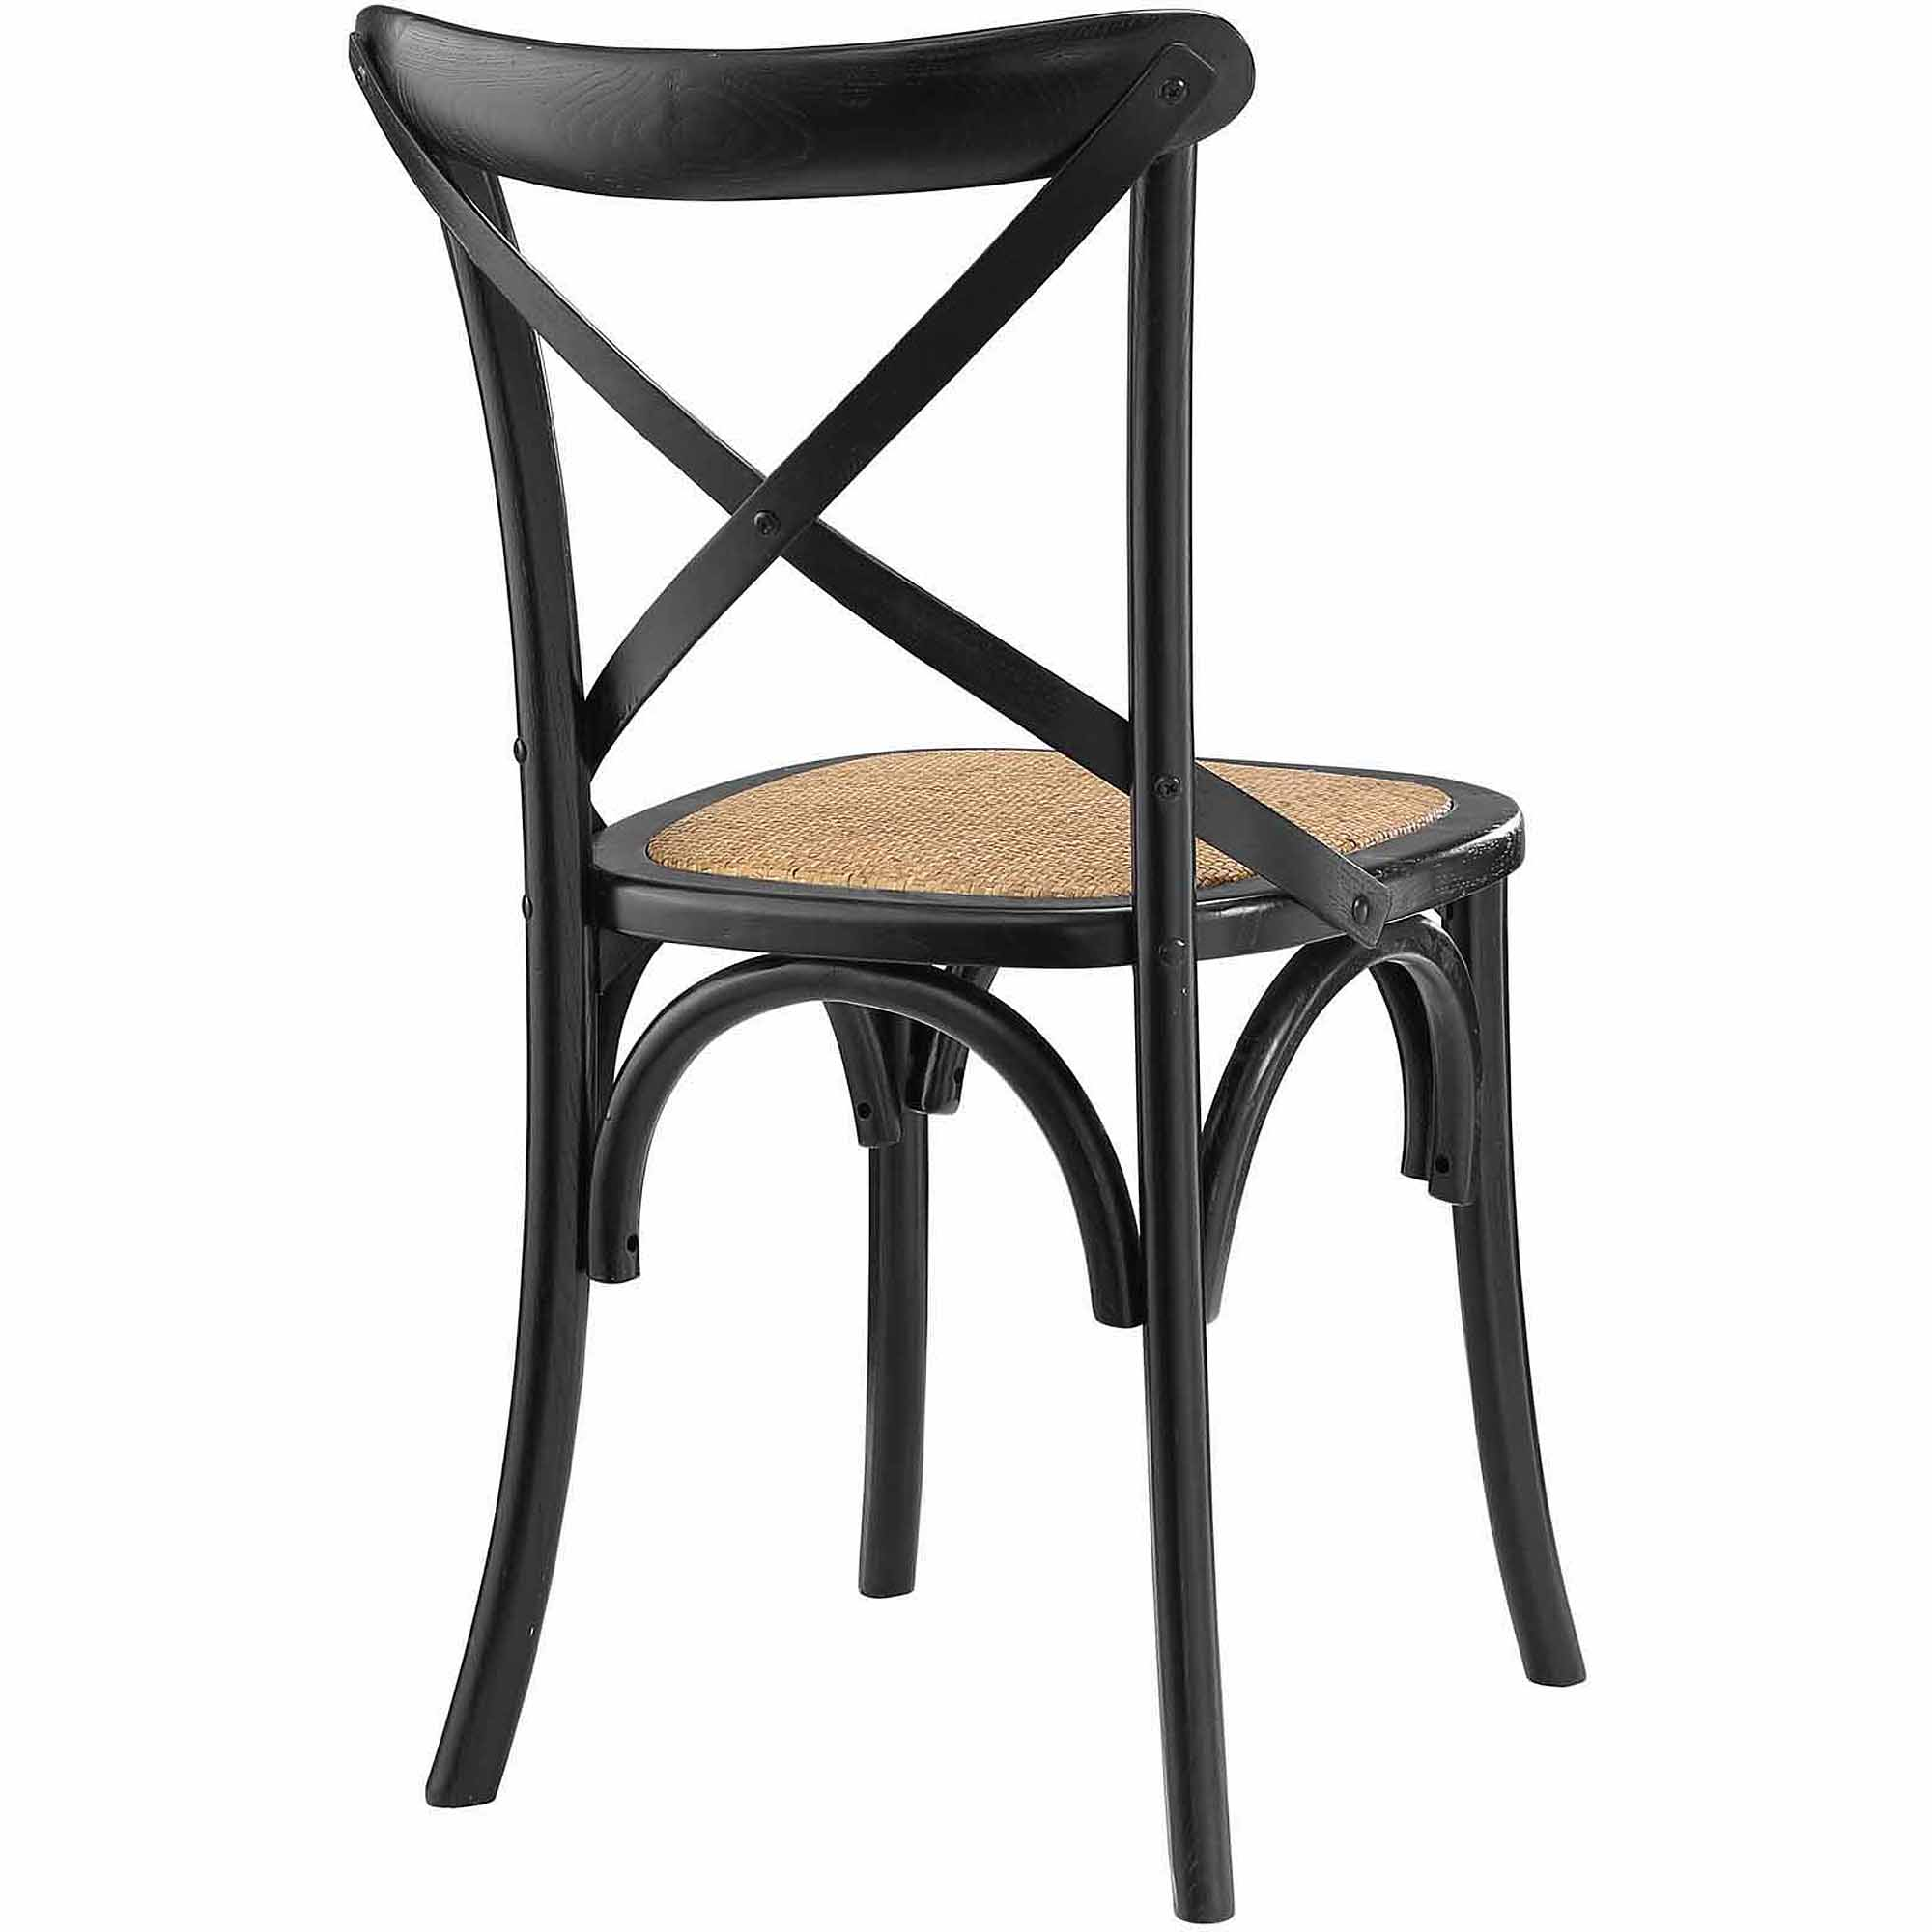 modway gear dining side chair fully assembled multiple colors modway gear dining side chair fully assembled multiple colors walmart com